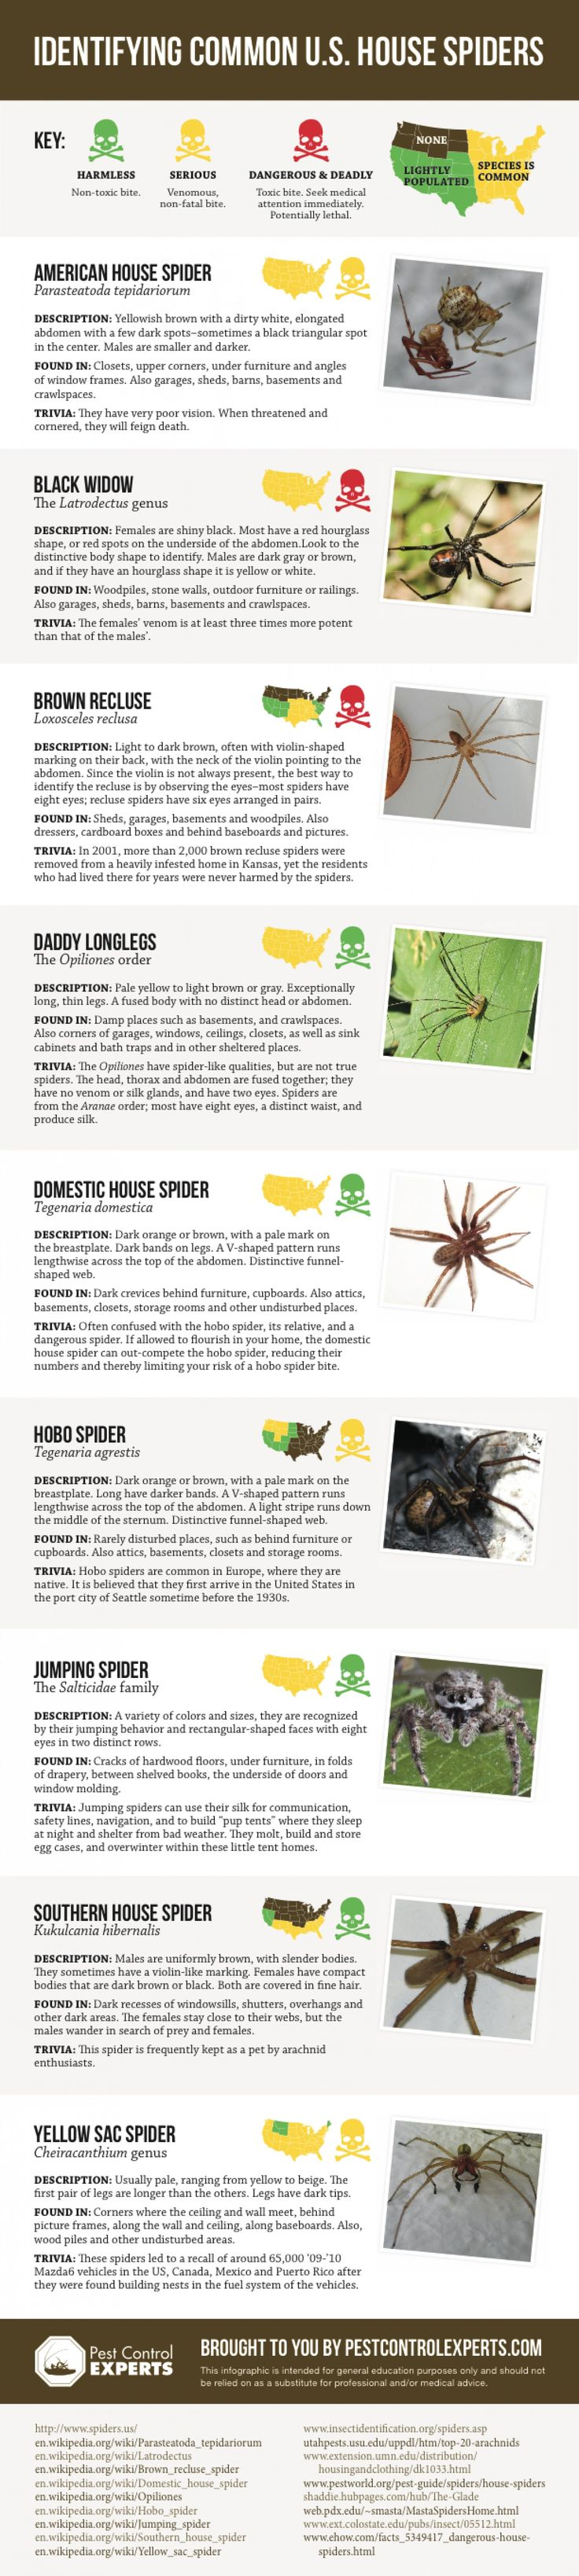 This picture has several different types of spiders. Such as a house spider, daddy long legs and others. It also says how dangerous there bites are